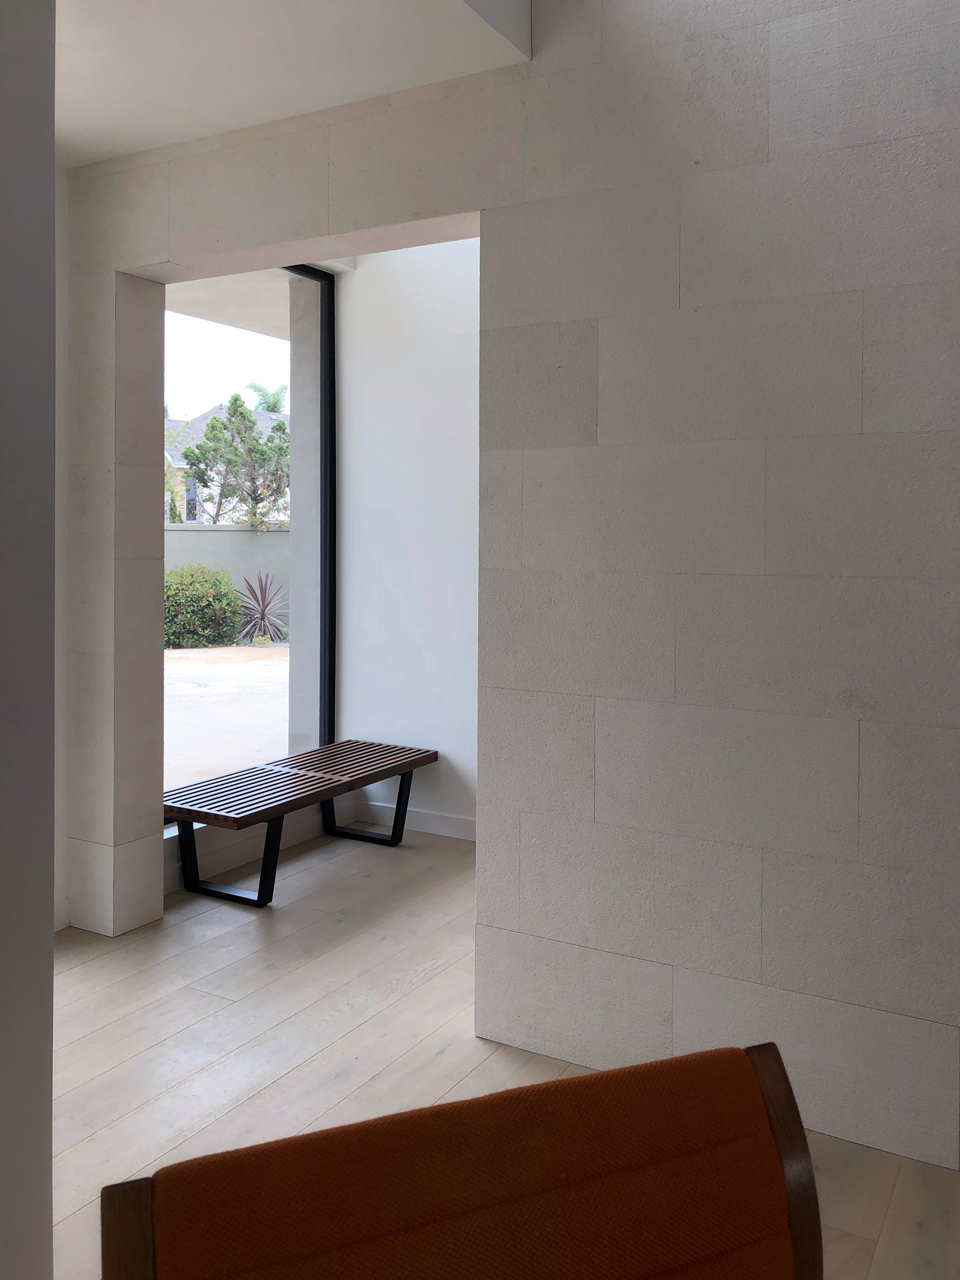 Nelson bench at entry / SeaCliff modernist residence, Huntington Beach